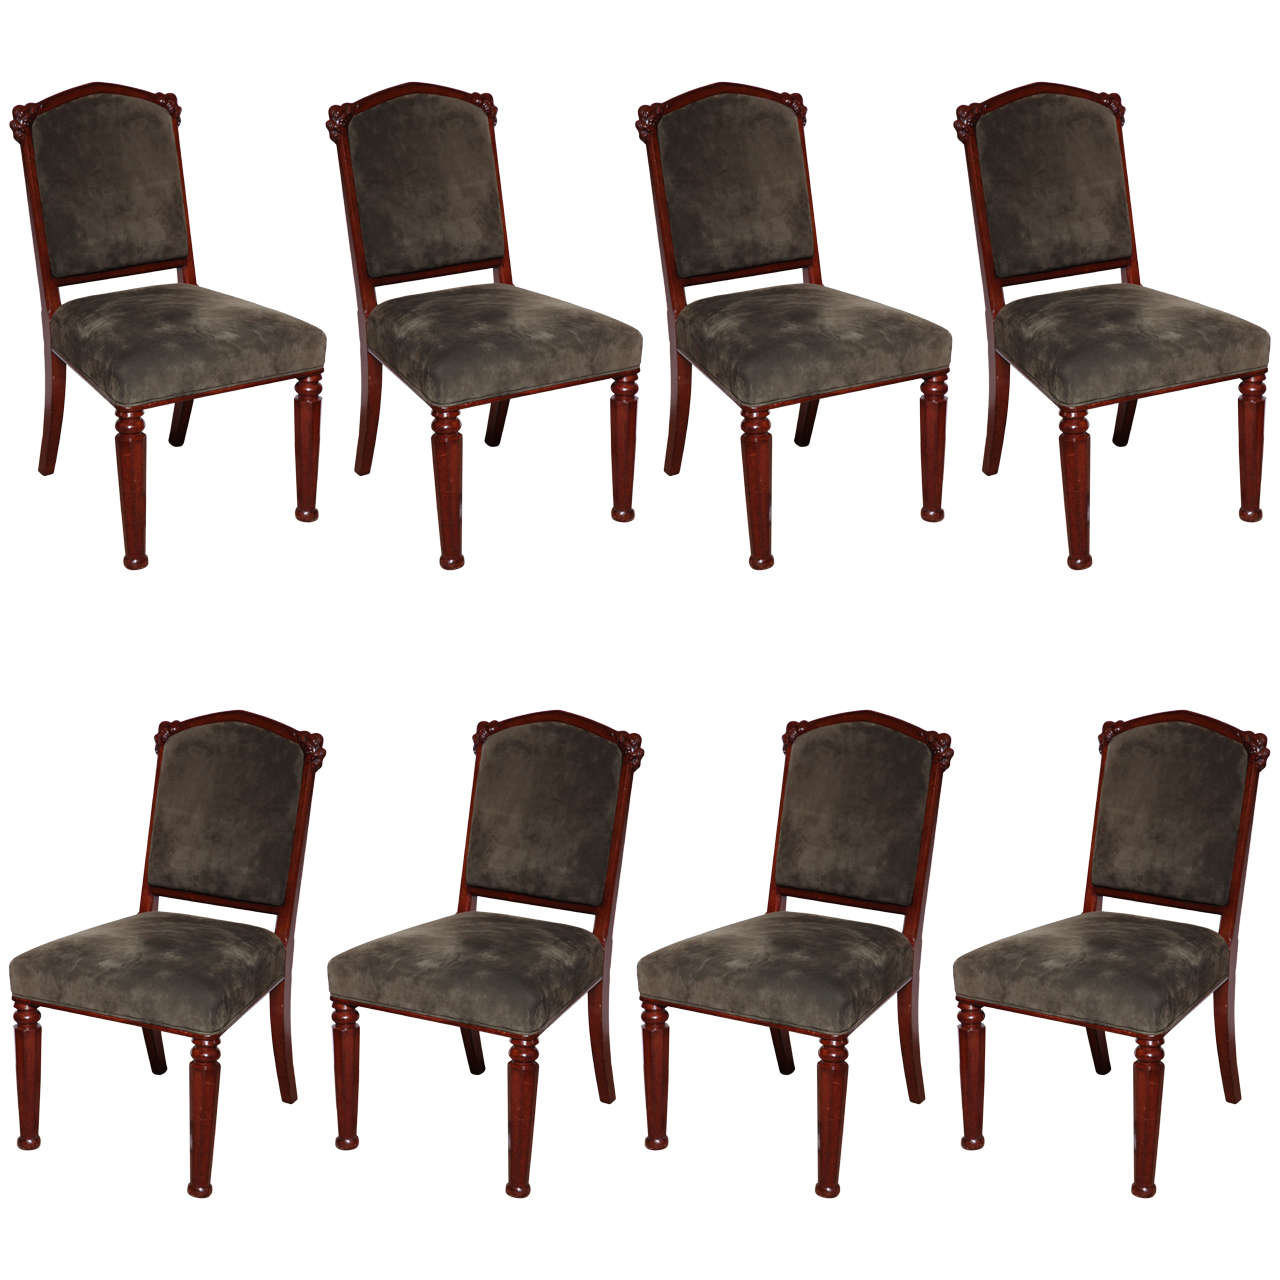 Set or Eight 19th Century English Chairs in The Gothic Taste